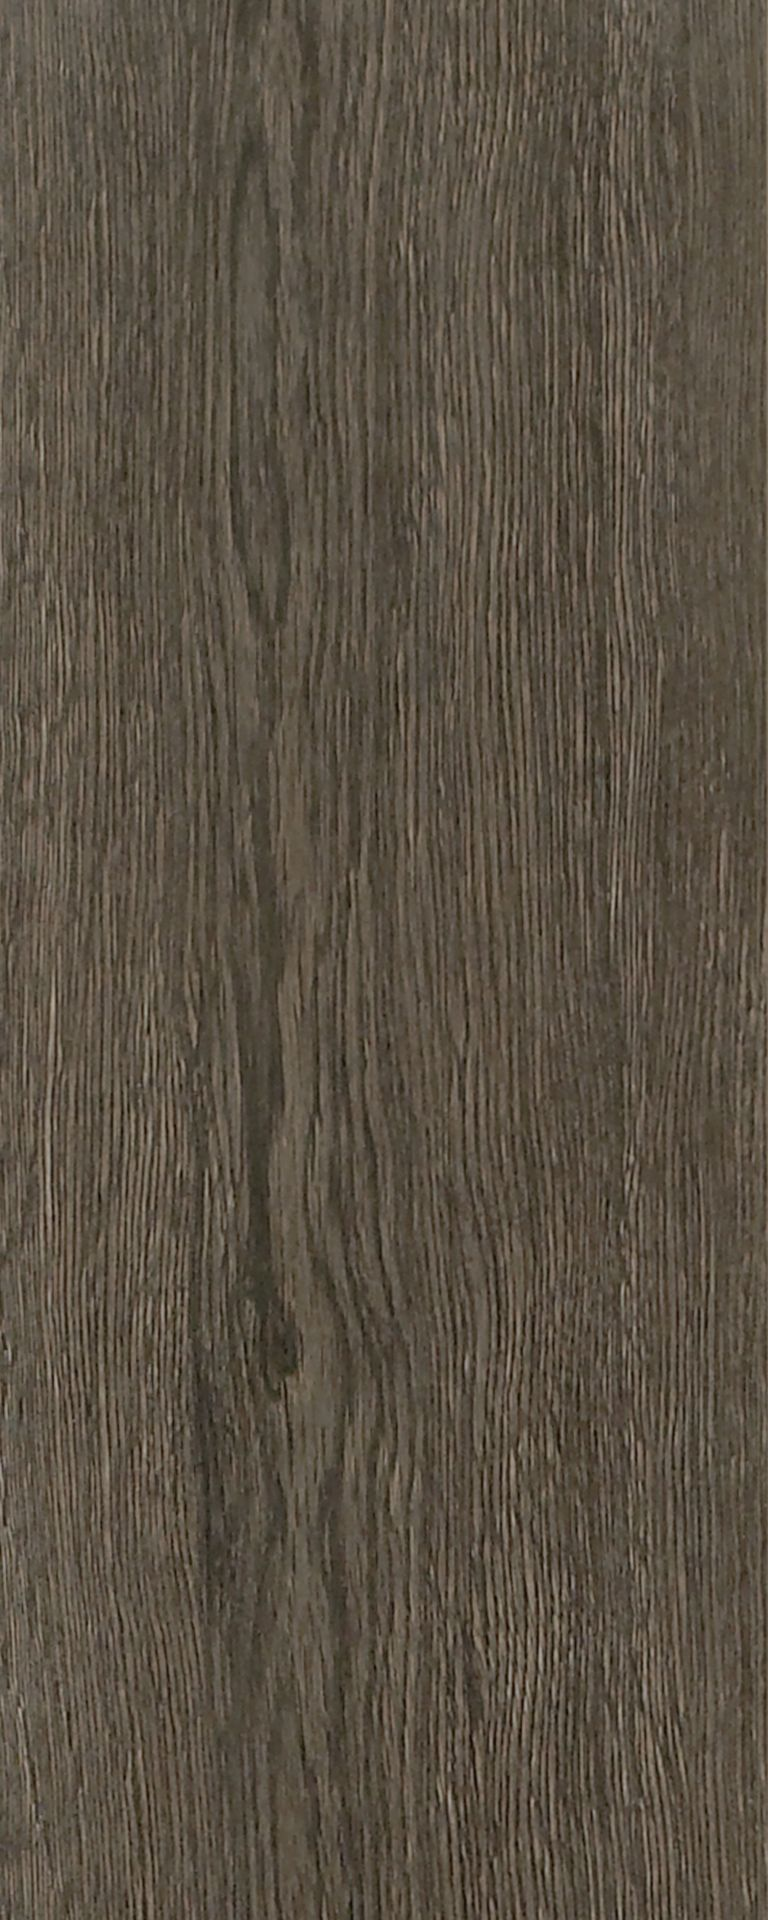 New England Long Plank - River Boat Brown Laminado L6582